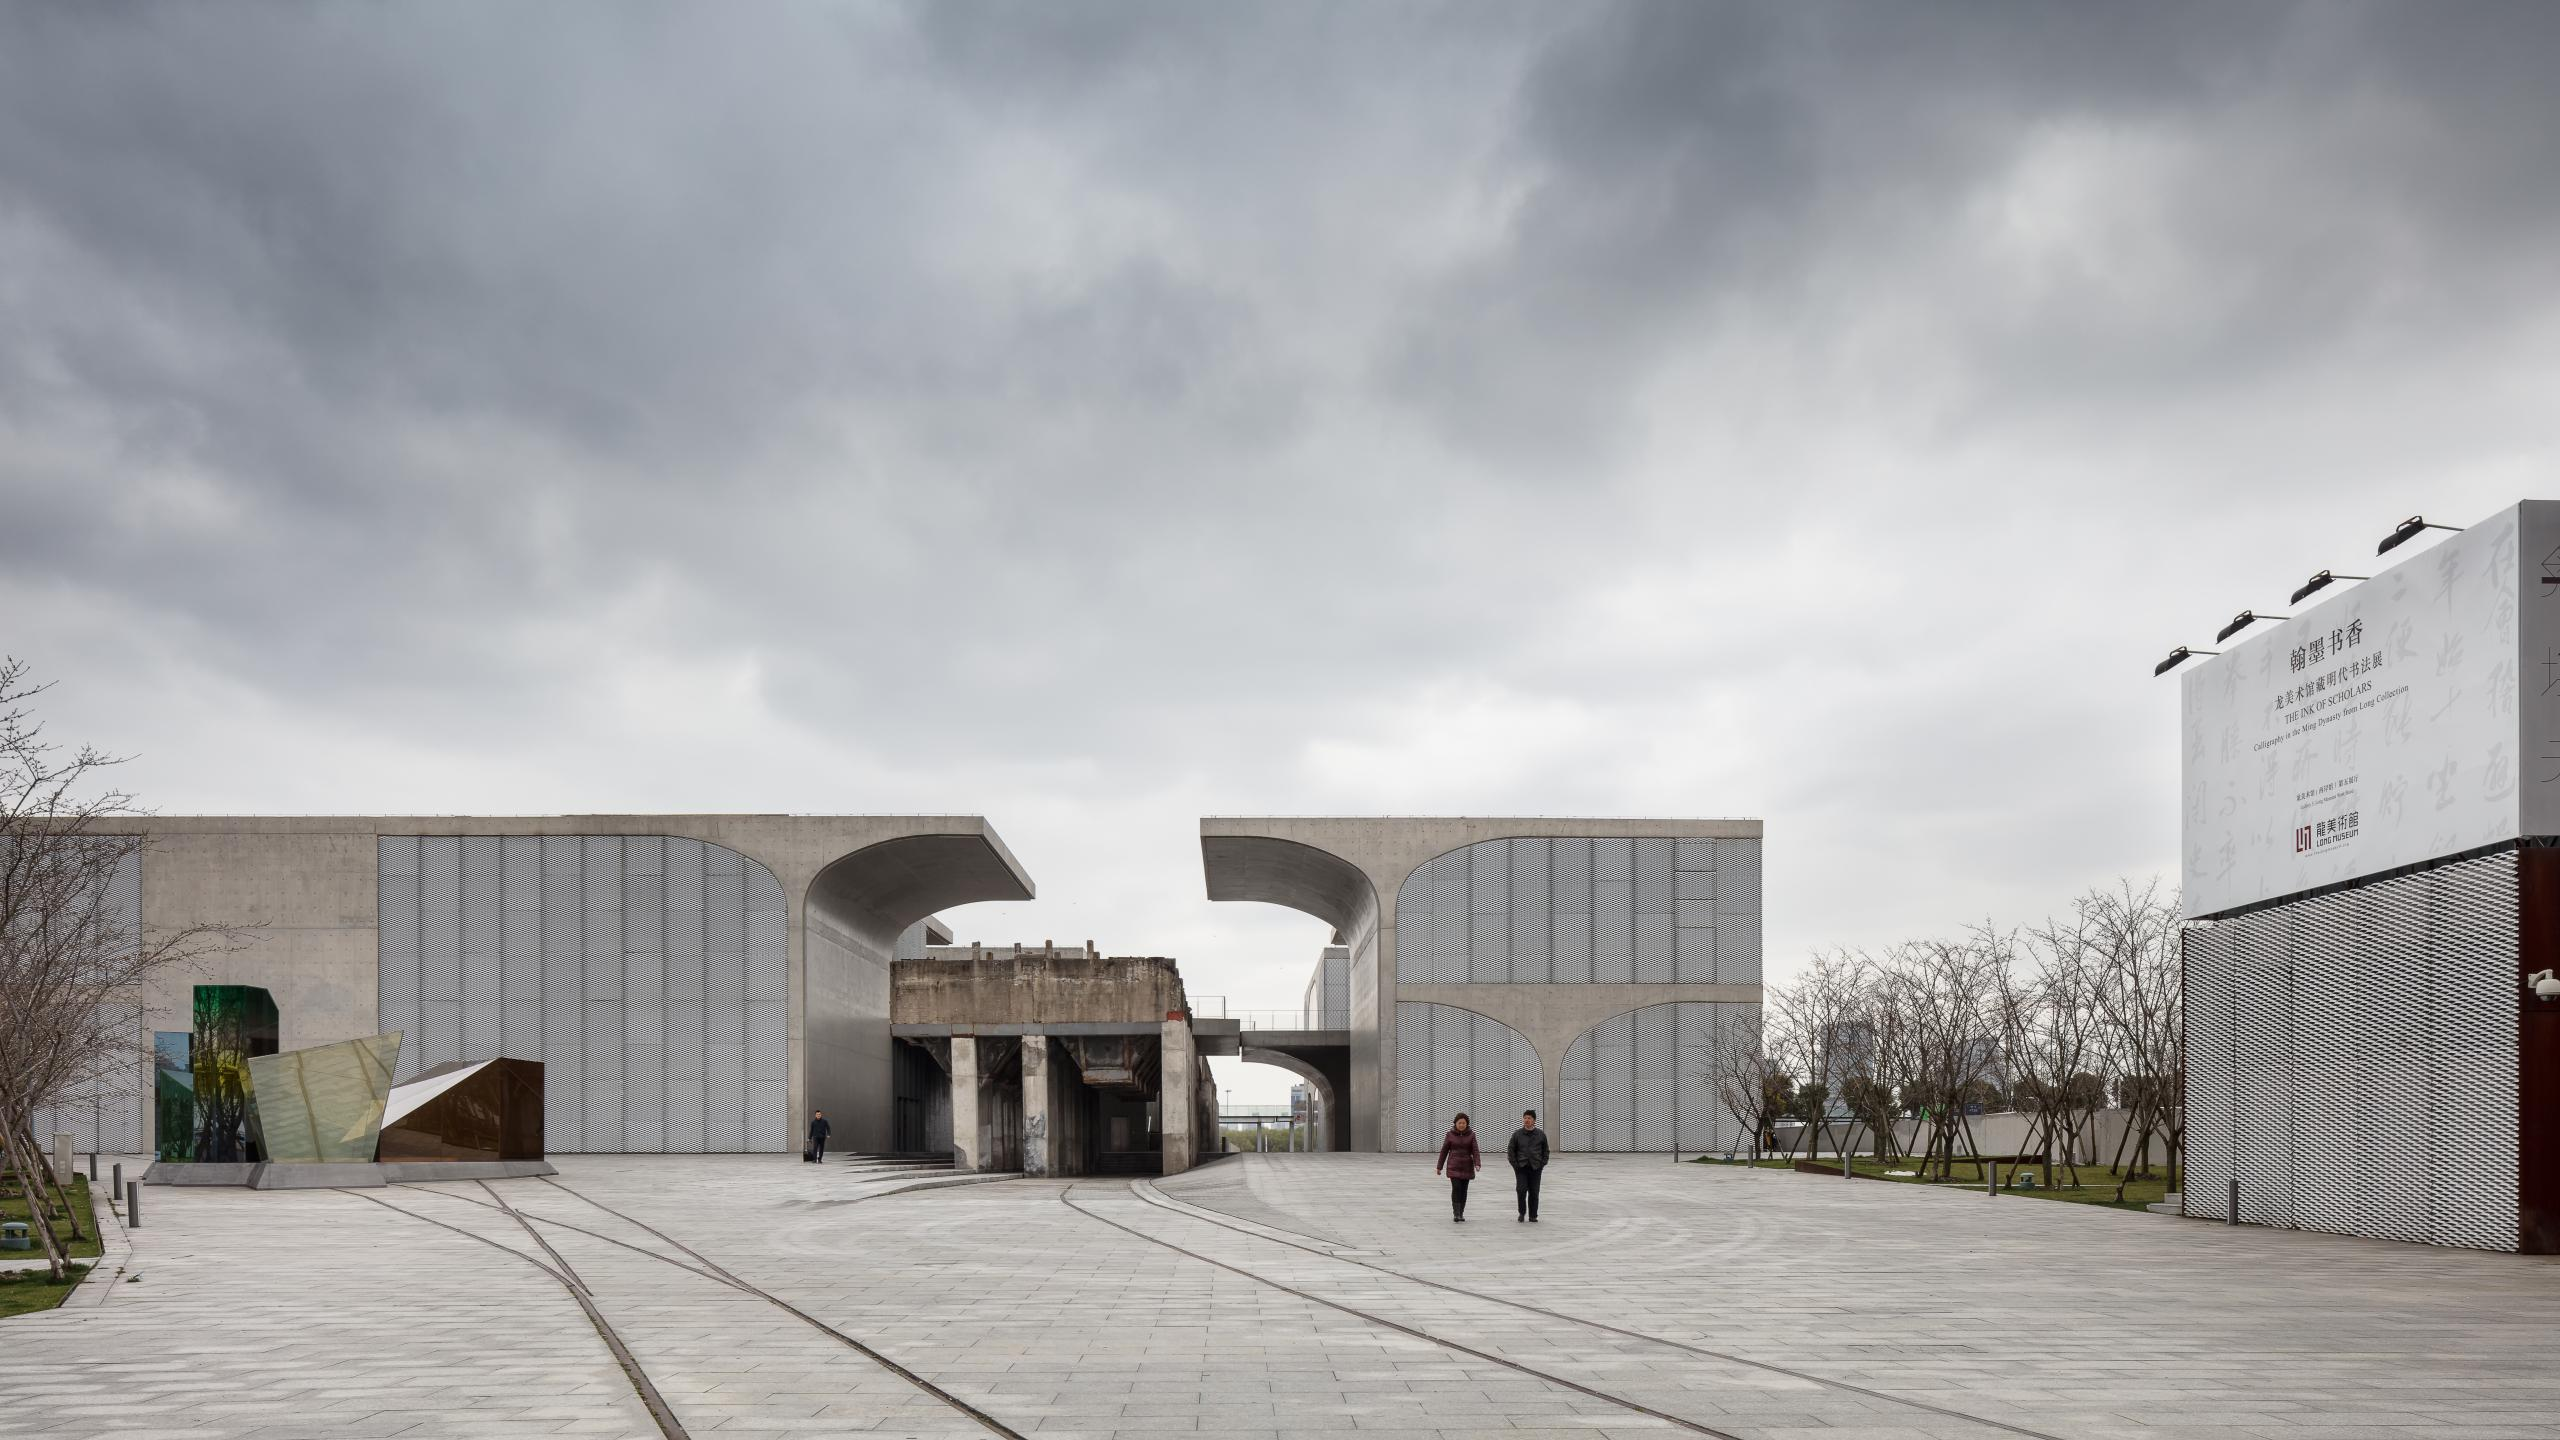 Photograph of Long Museum West Bund, designed by Atelier Deshaus and located in Shanghai, China